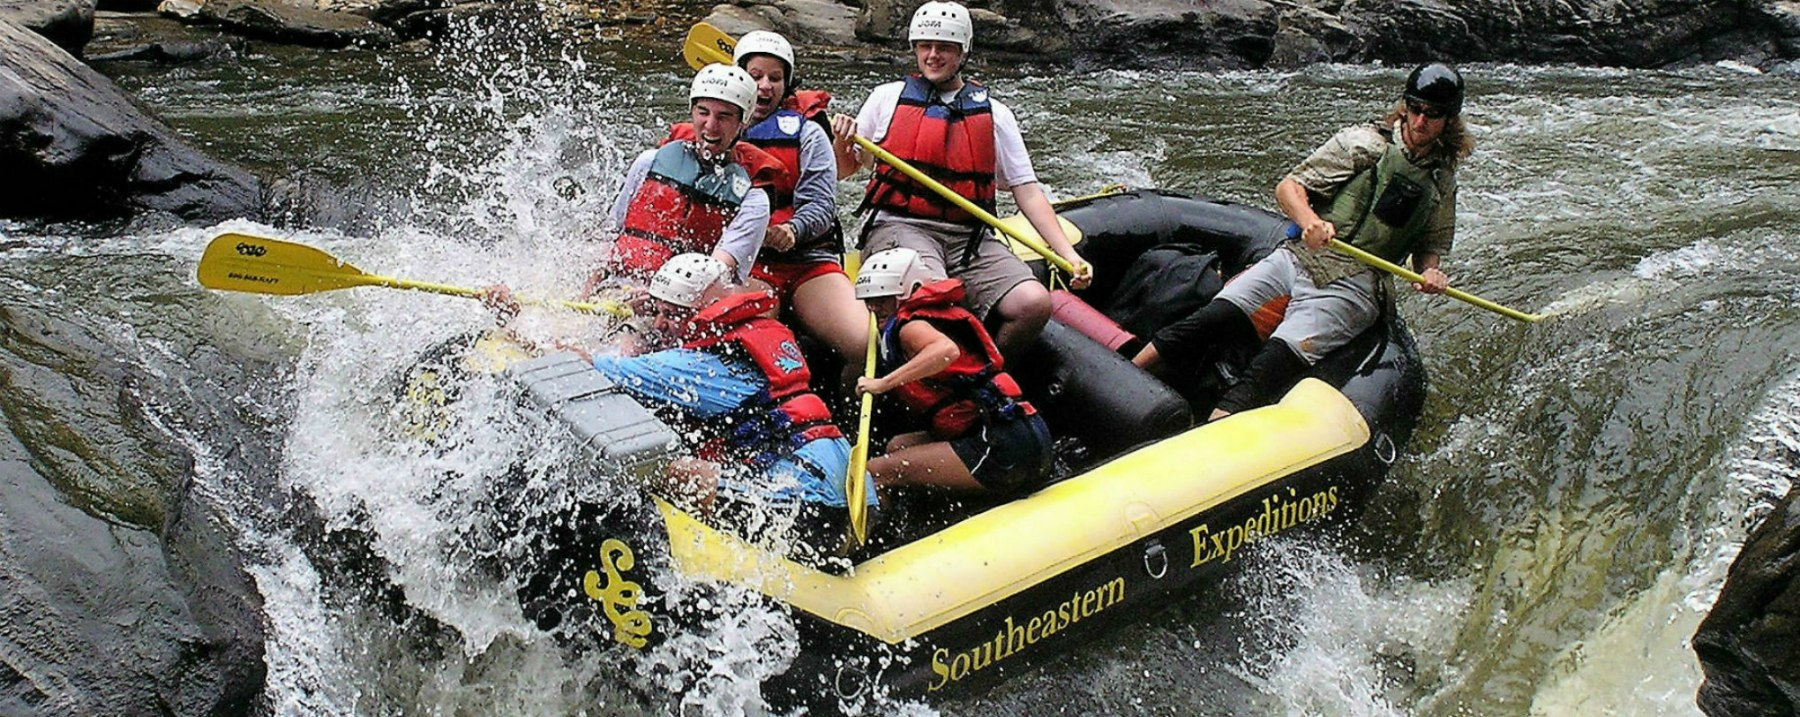 Image of River Rafting on the Chattooga River near the Beechwood inn